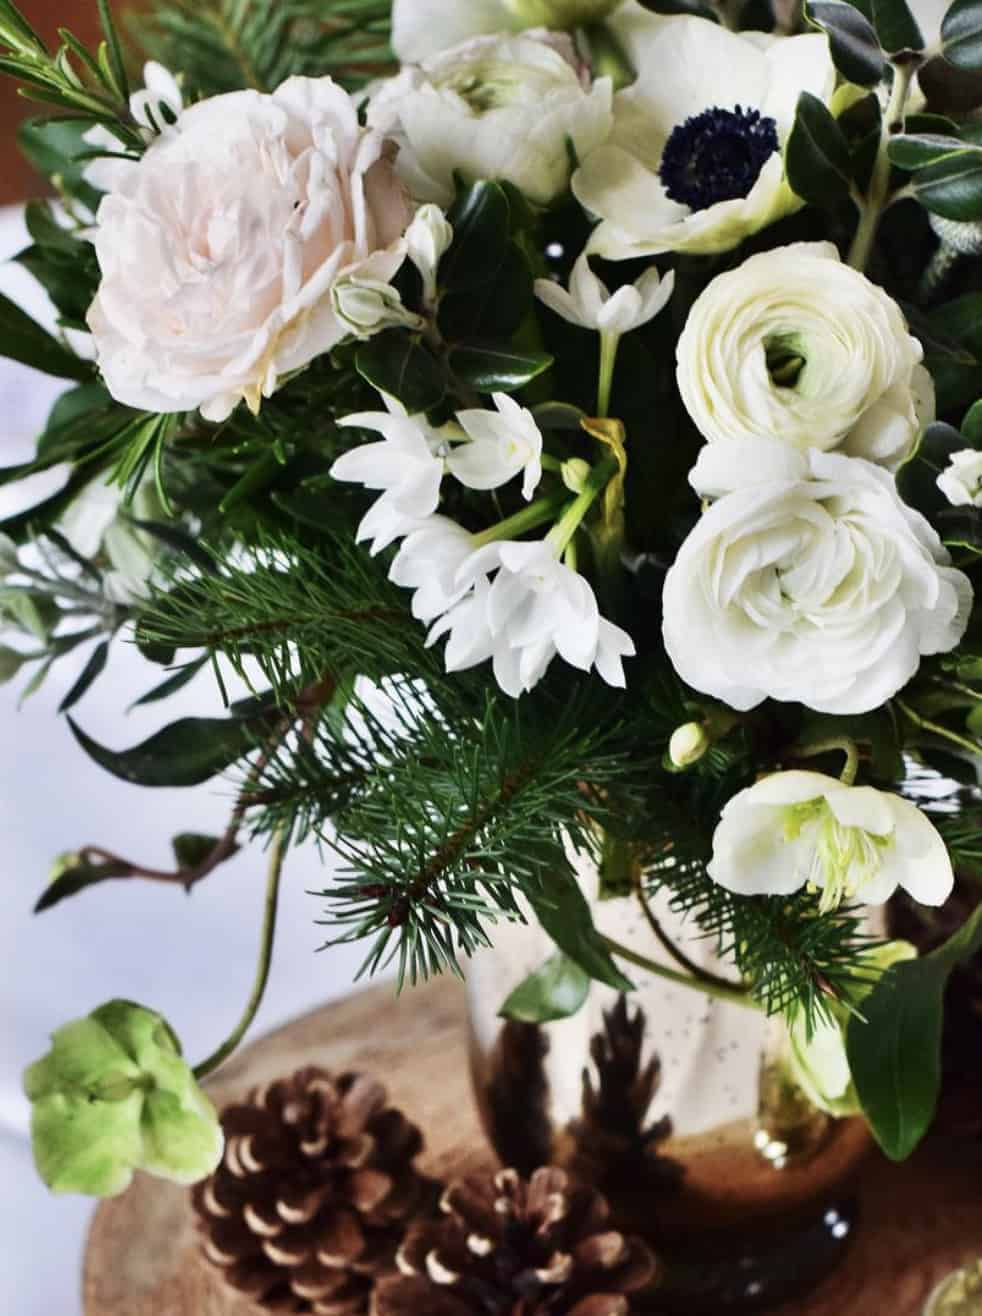 love this white and blush pink christmas flower arrangement idea by Floribunda Rose including white ranunculus, panda anemone, blush roses, paperwhite narcissi, lime hellebores and pine cones. Click through for more creative and beautiful DIY christmas table centrepiece ideas you'll love to try this holiday season